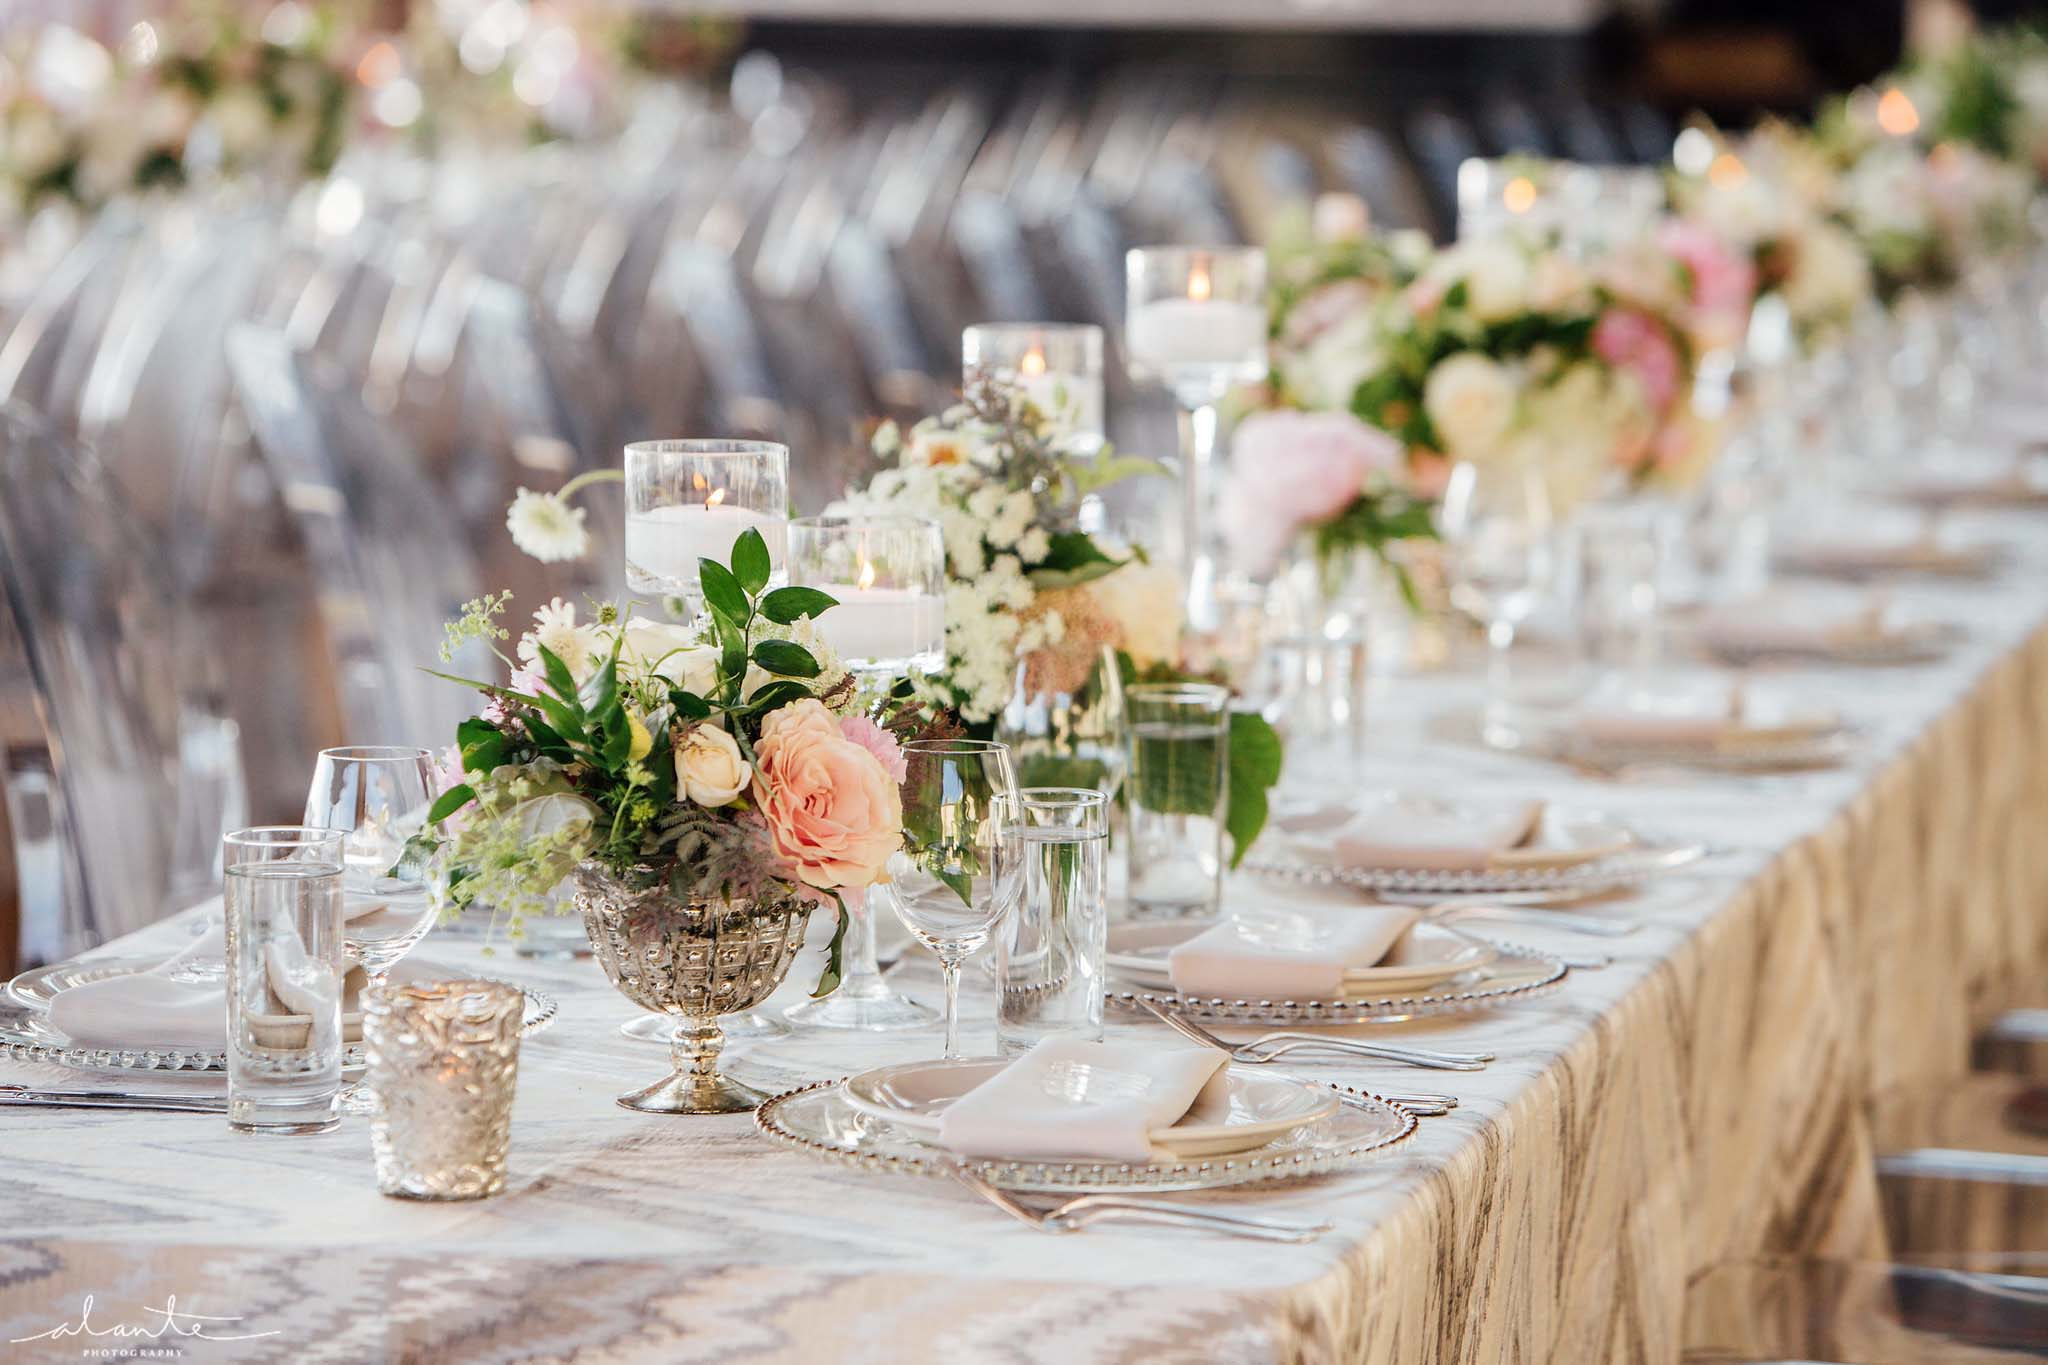 Long table lined with flowers and candles - Olympic Rooftop Pavilion wedding with pink peonies by Flora Nova Design Seattle